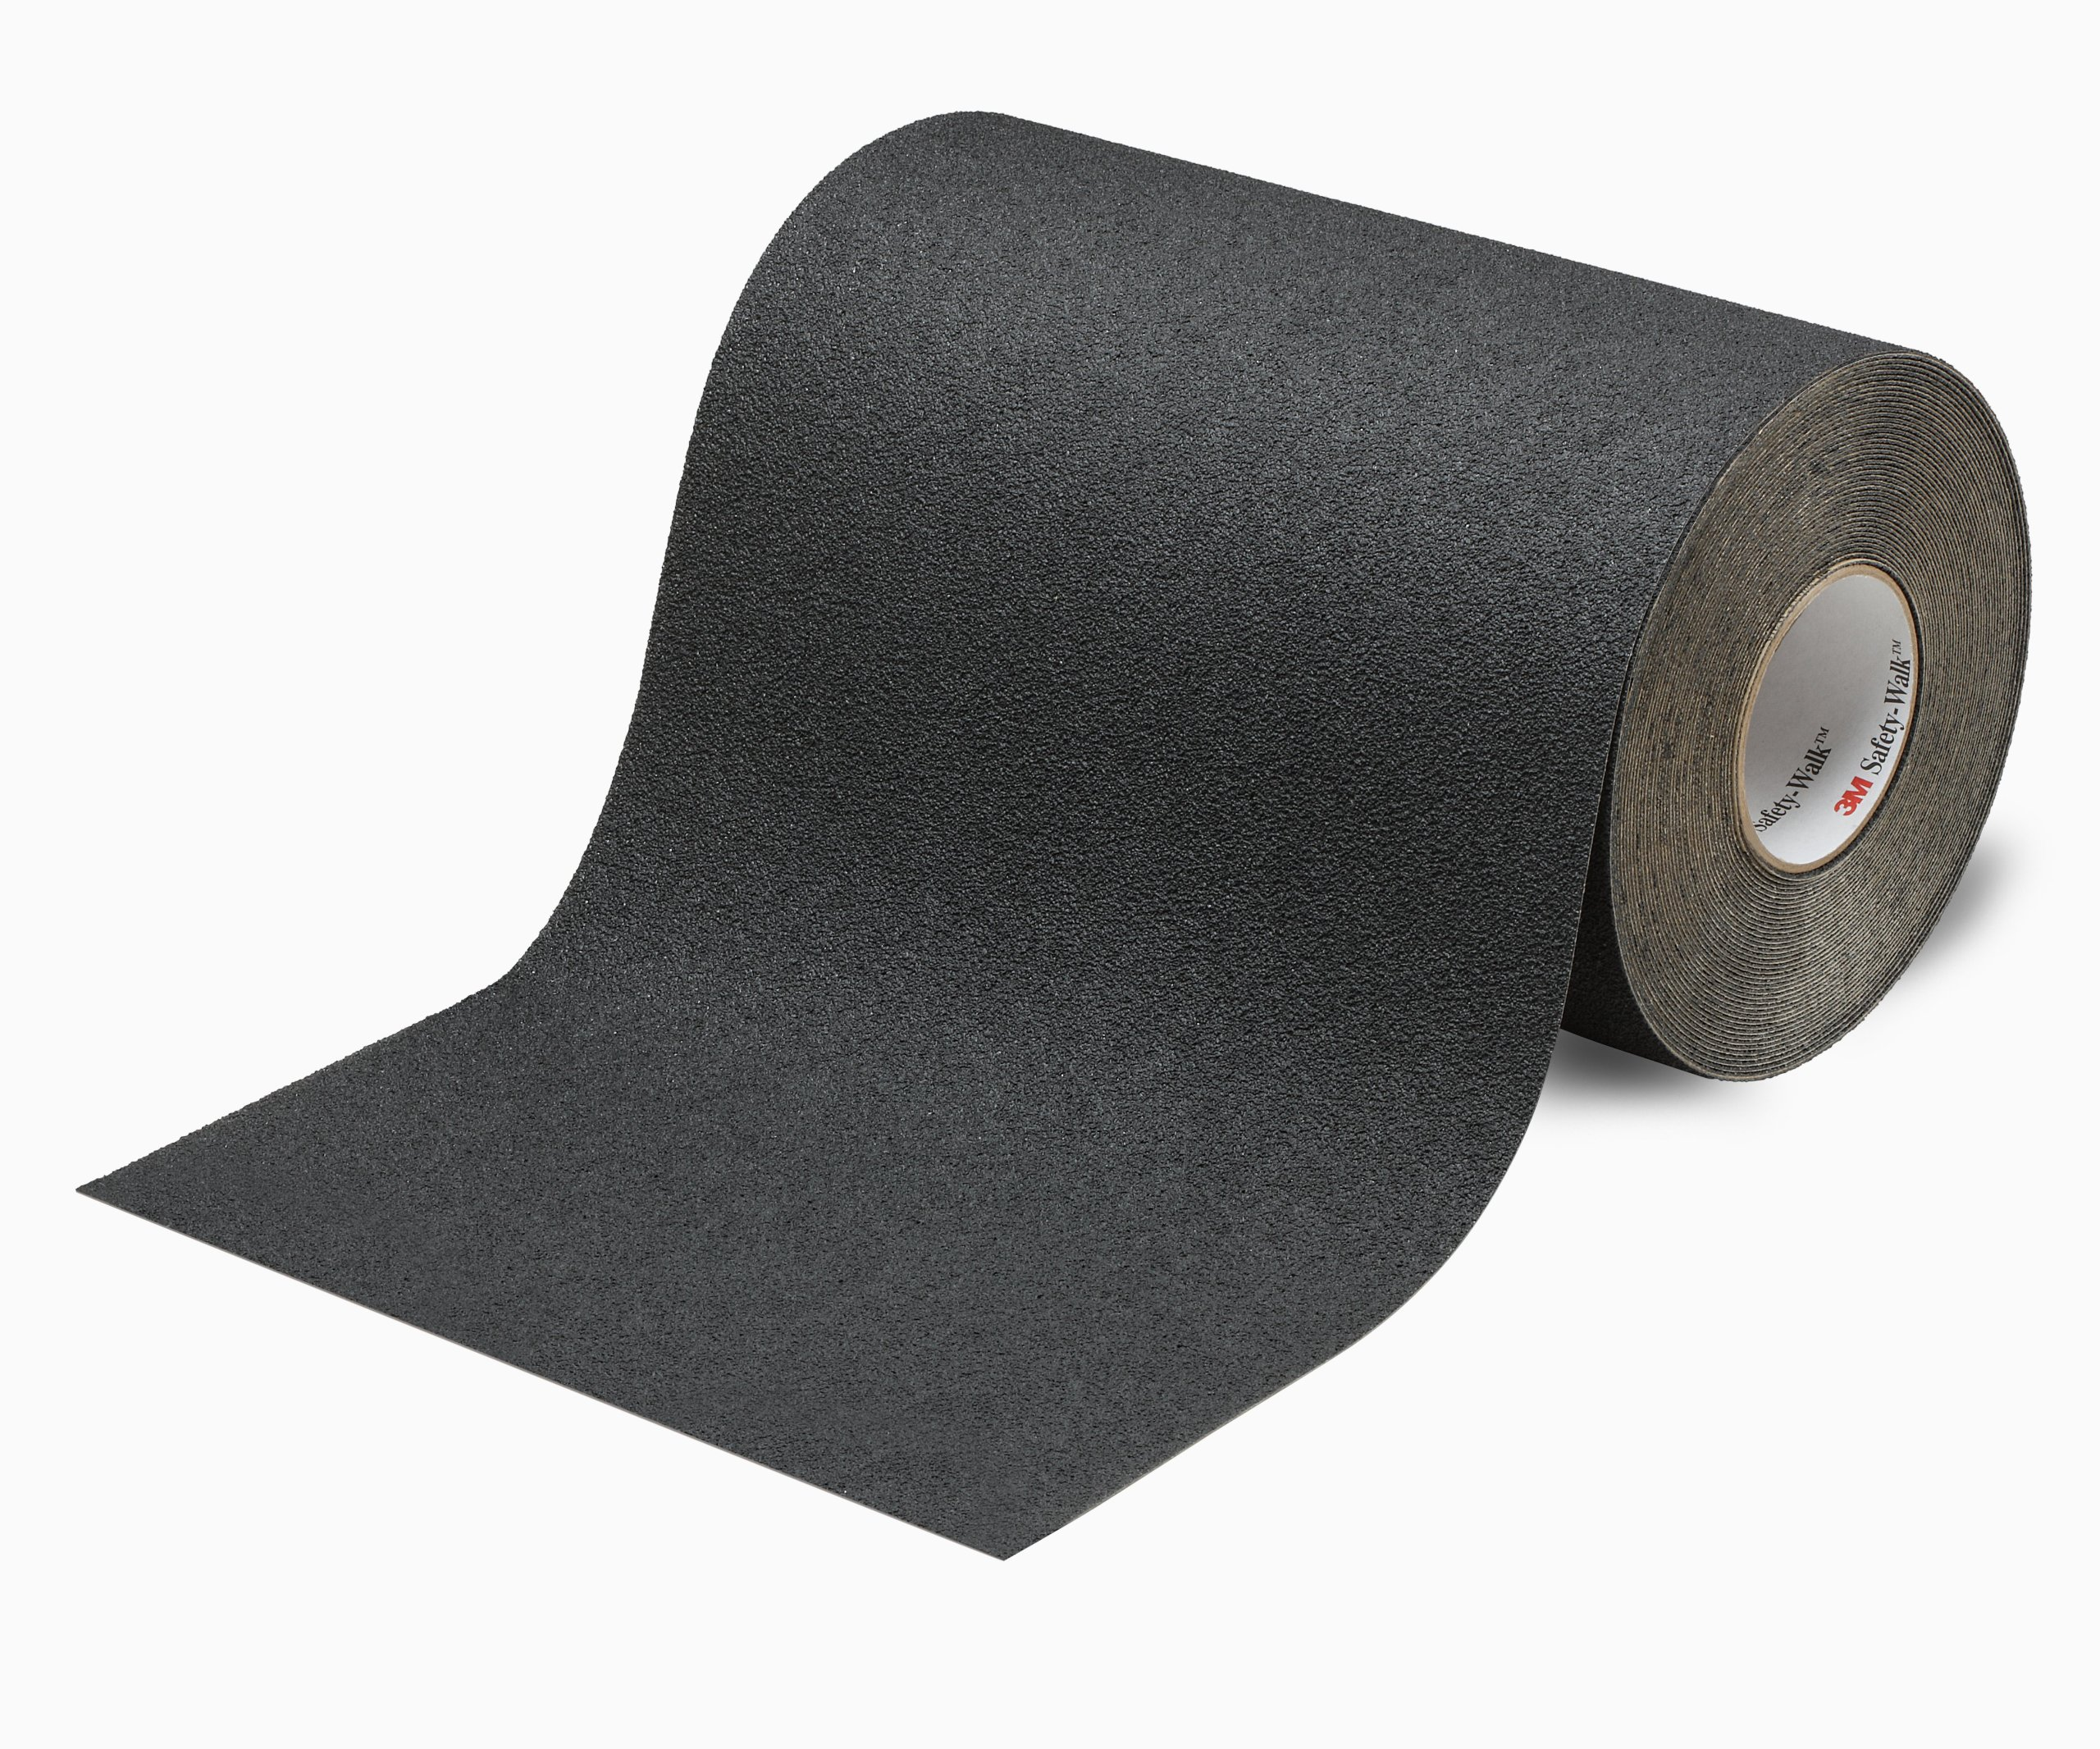 3M Safety-Walk Slip-Resistant Medium Resilient Tapes and Treads 310, Black, 36'' Width, 60' Length (Pack of 1 Roll)